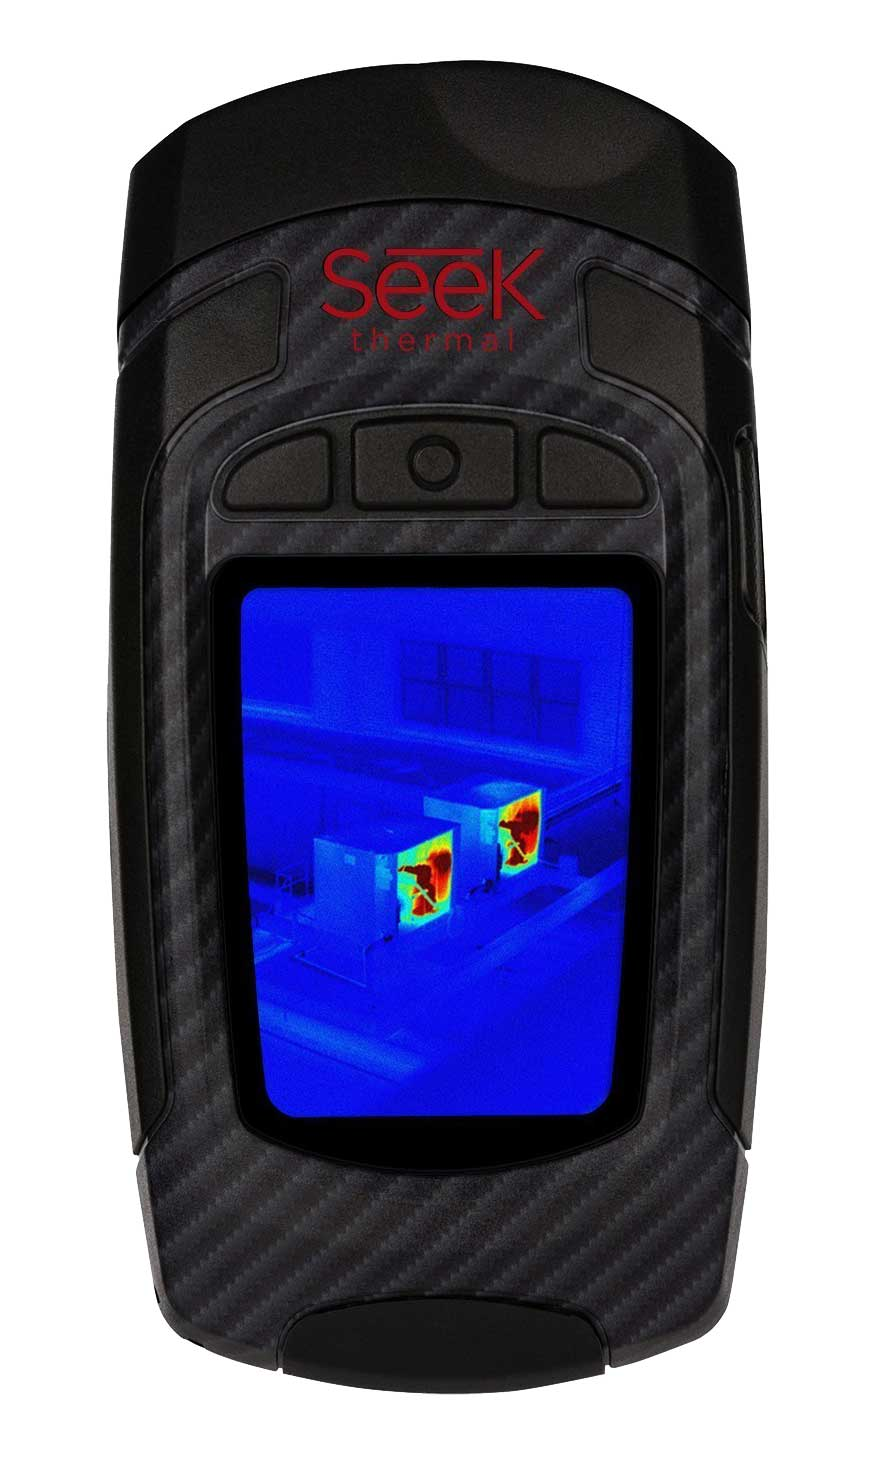 Seek Thermal Camera >> Handheld Thermal Imaging Camera | Seek Thermal Inc. | Oct ...